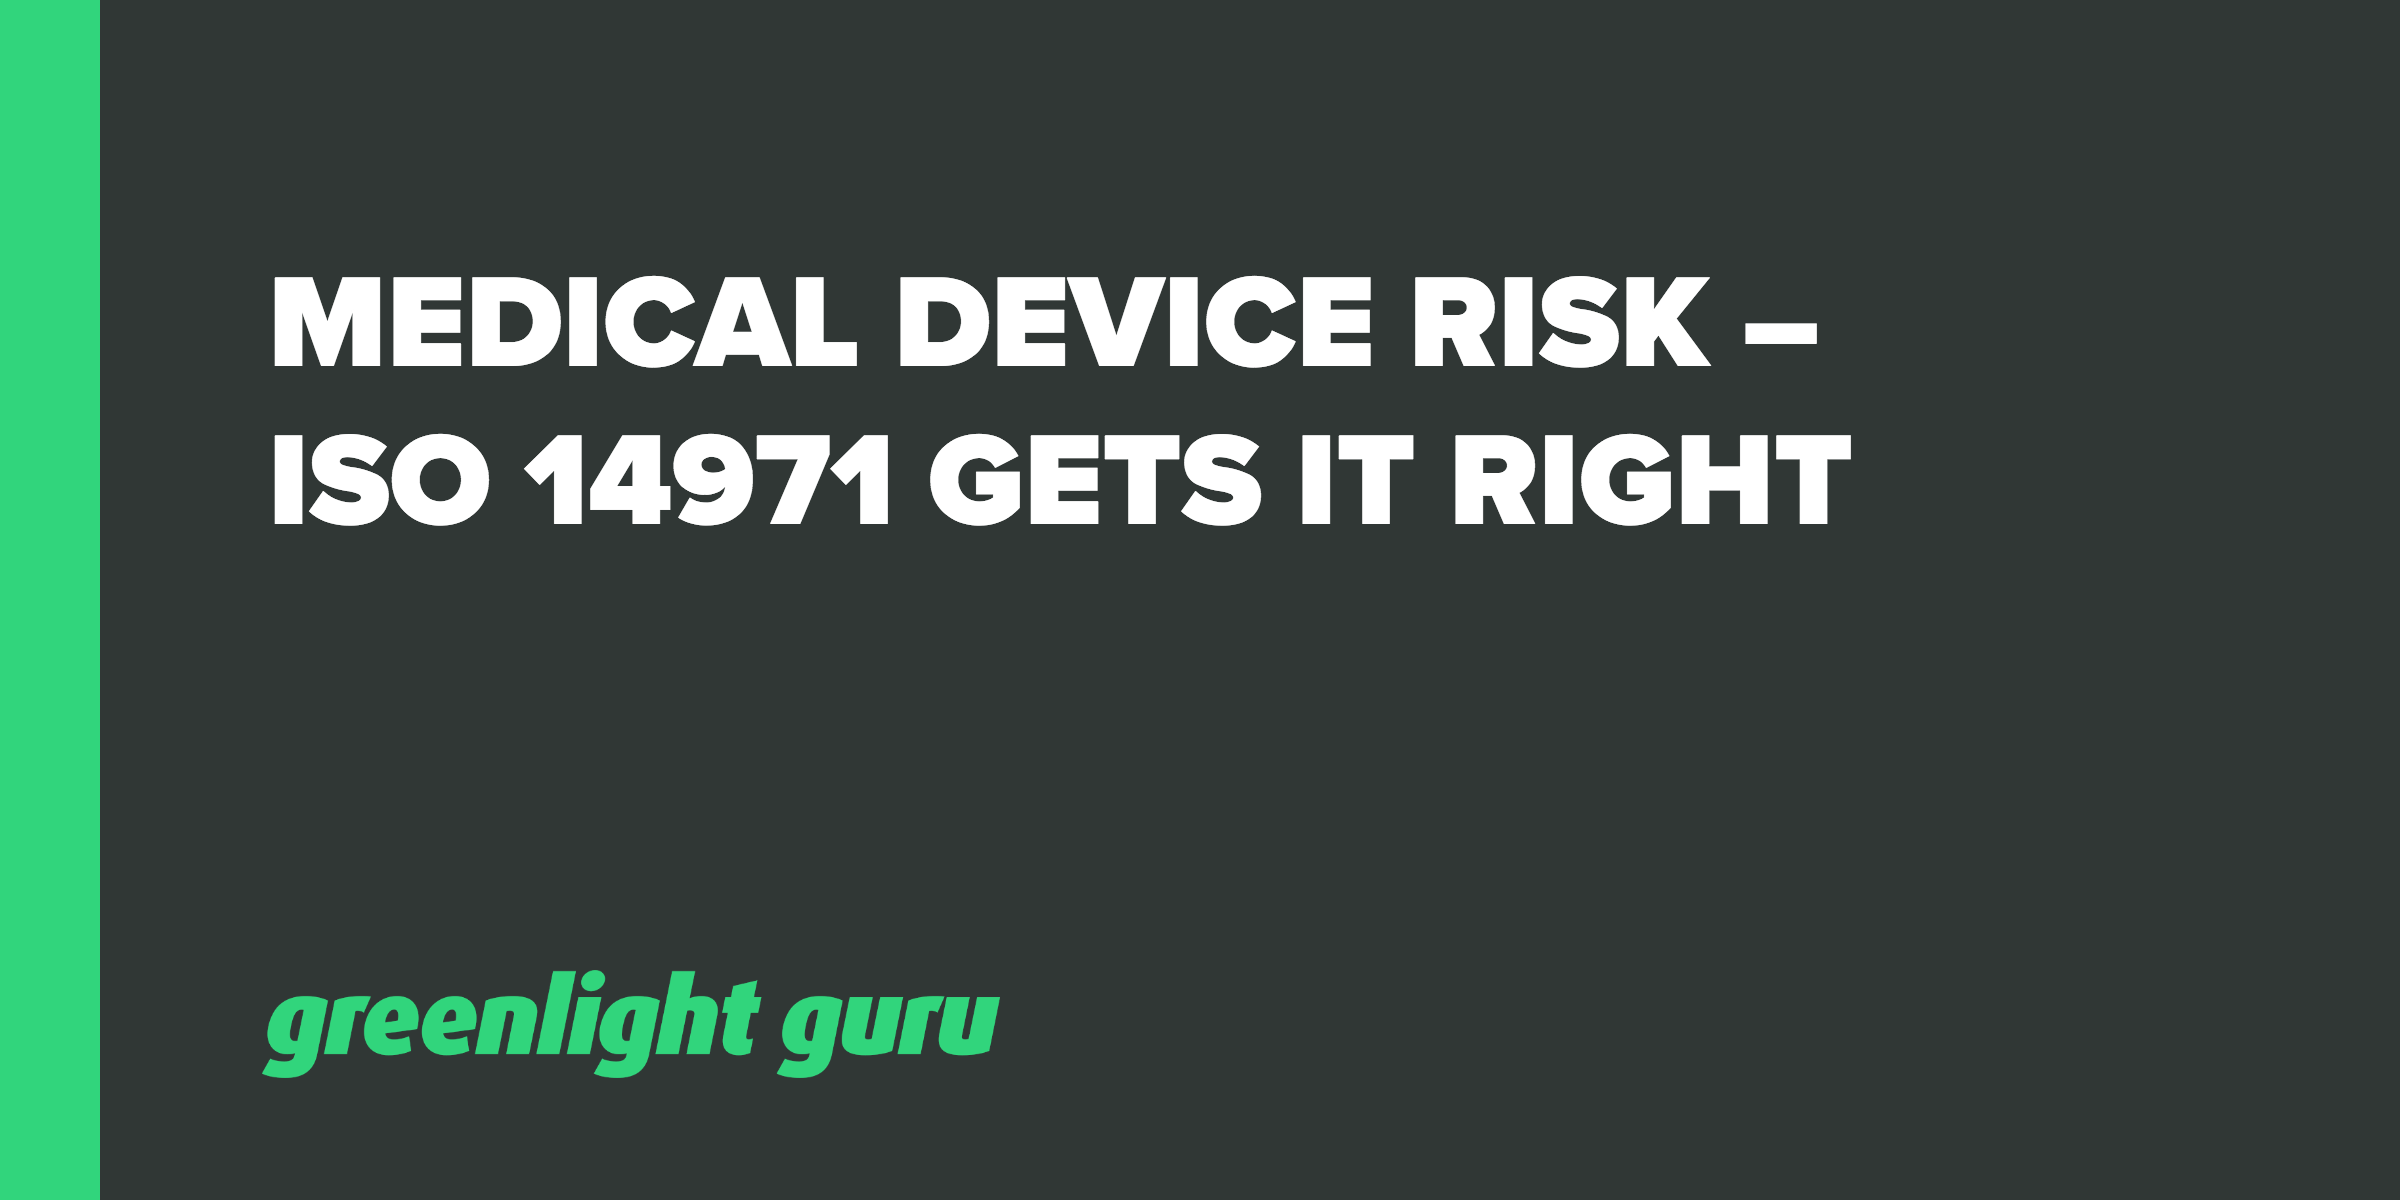 Medical Device Risk – ISO 14971 Gets ItRight - Featured Image